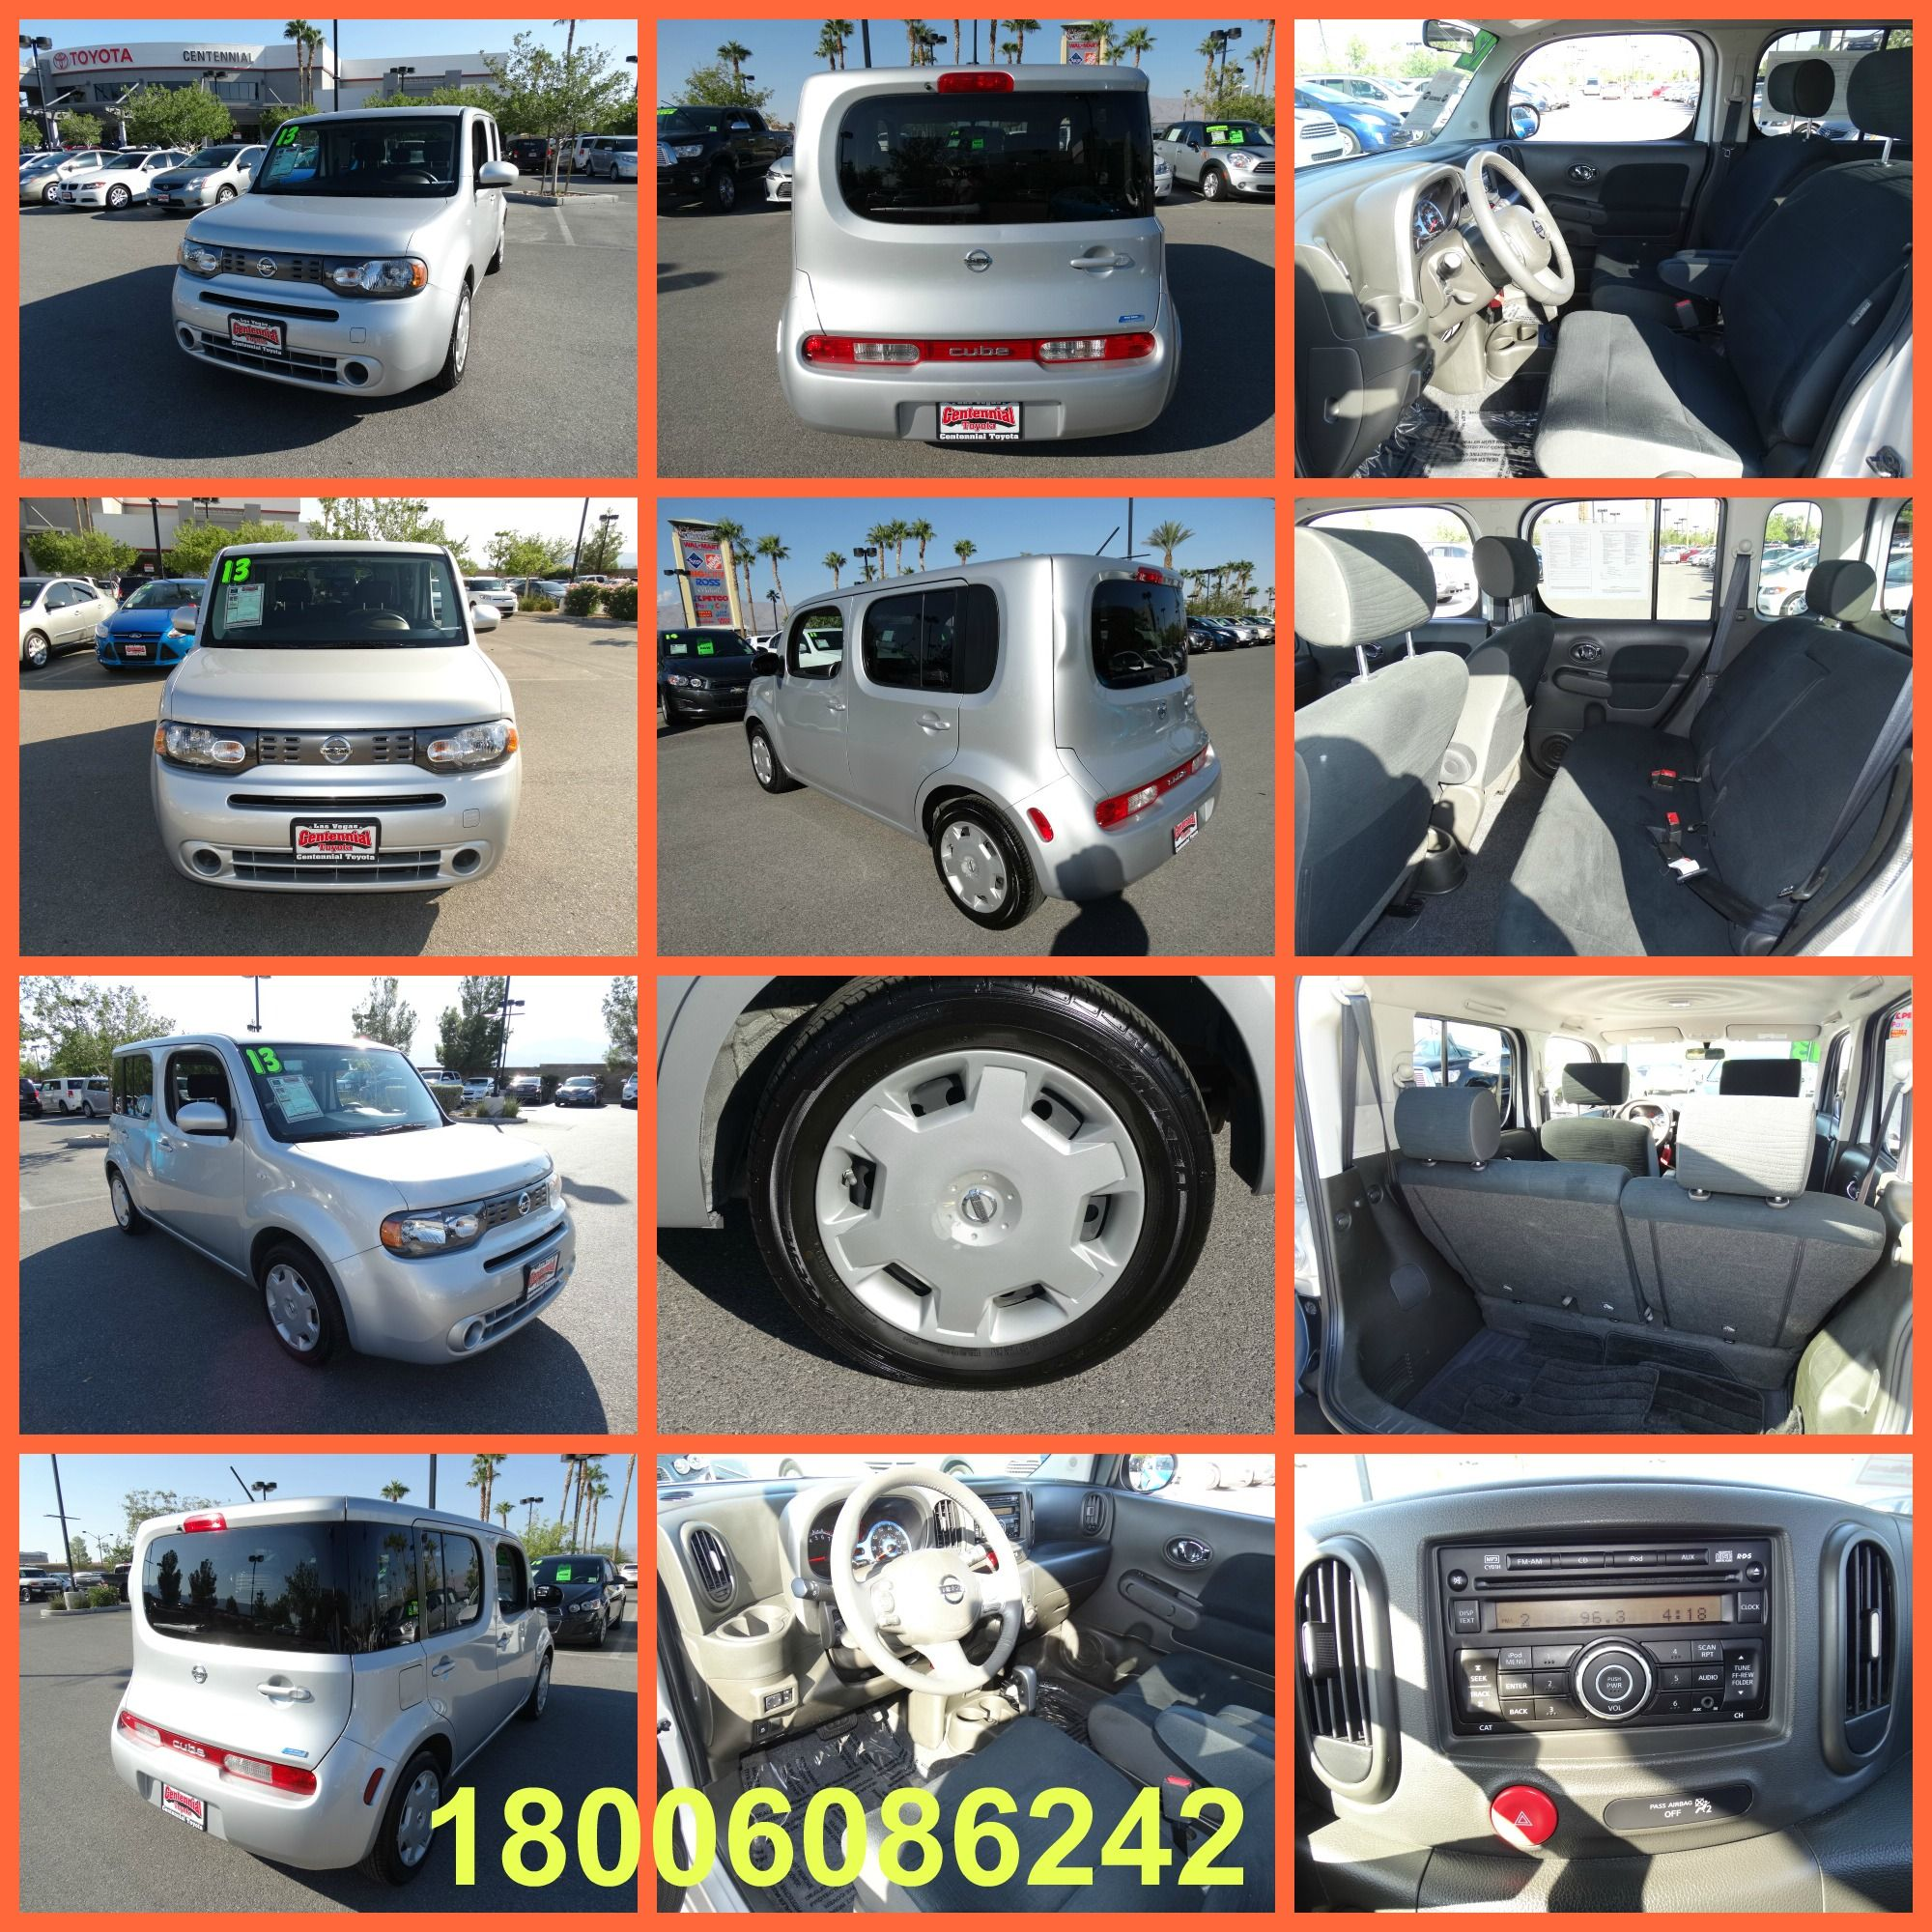 Car color from vin number - 2013 Nissan Cube S Wagon 4d Stock Number 340536 Vin Number Jn8az2krxdt302941 Price 13 995 Used Car 2013 Nissan Cube S Wagon For Sale Color Silver